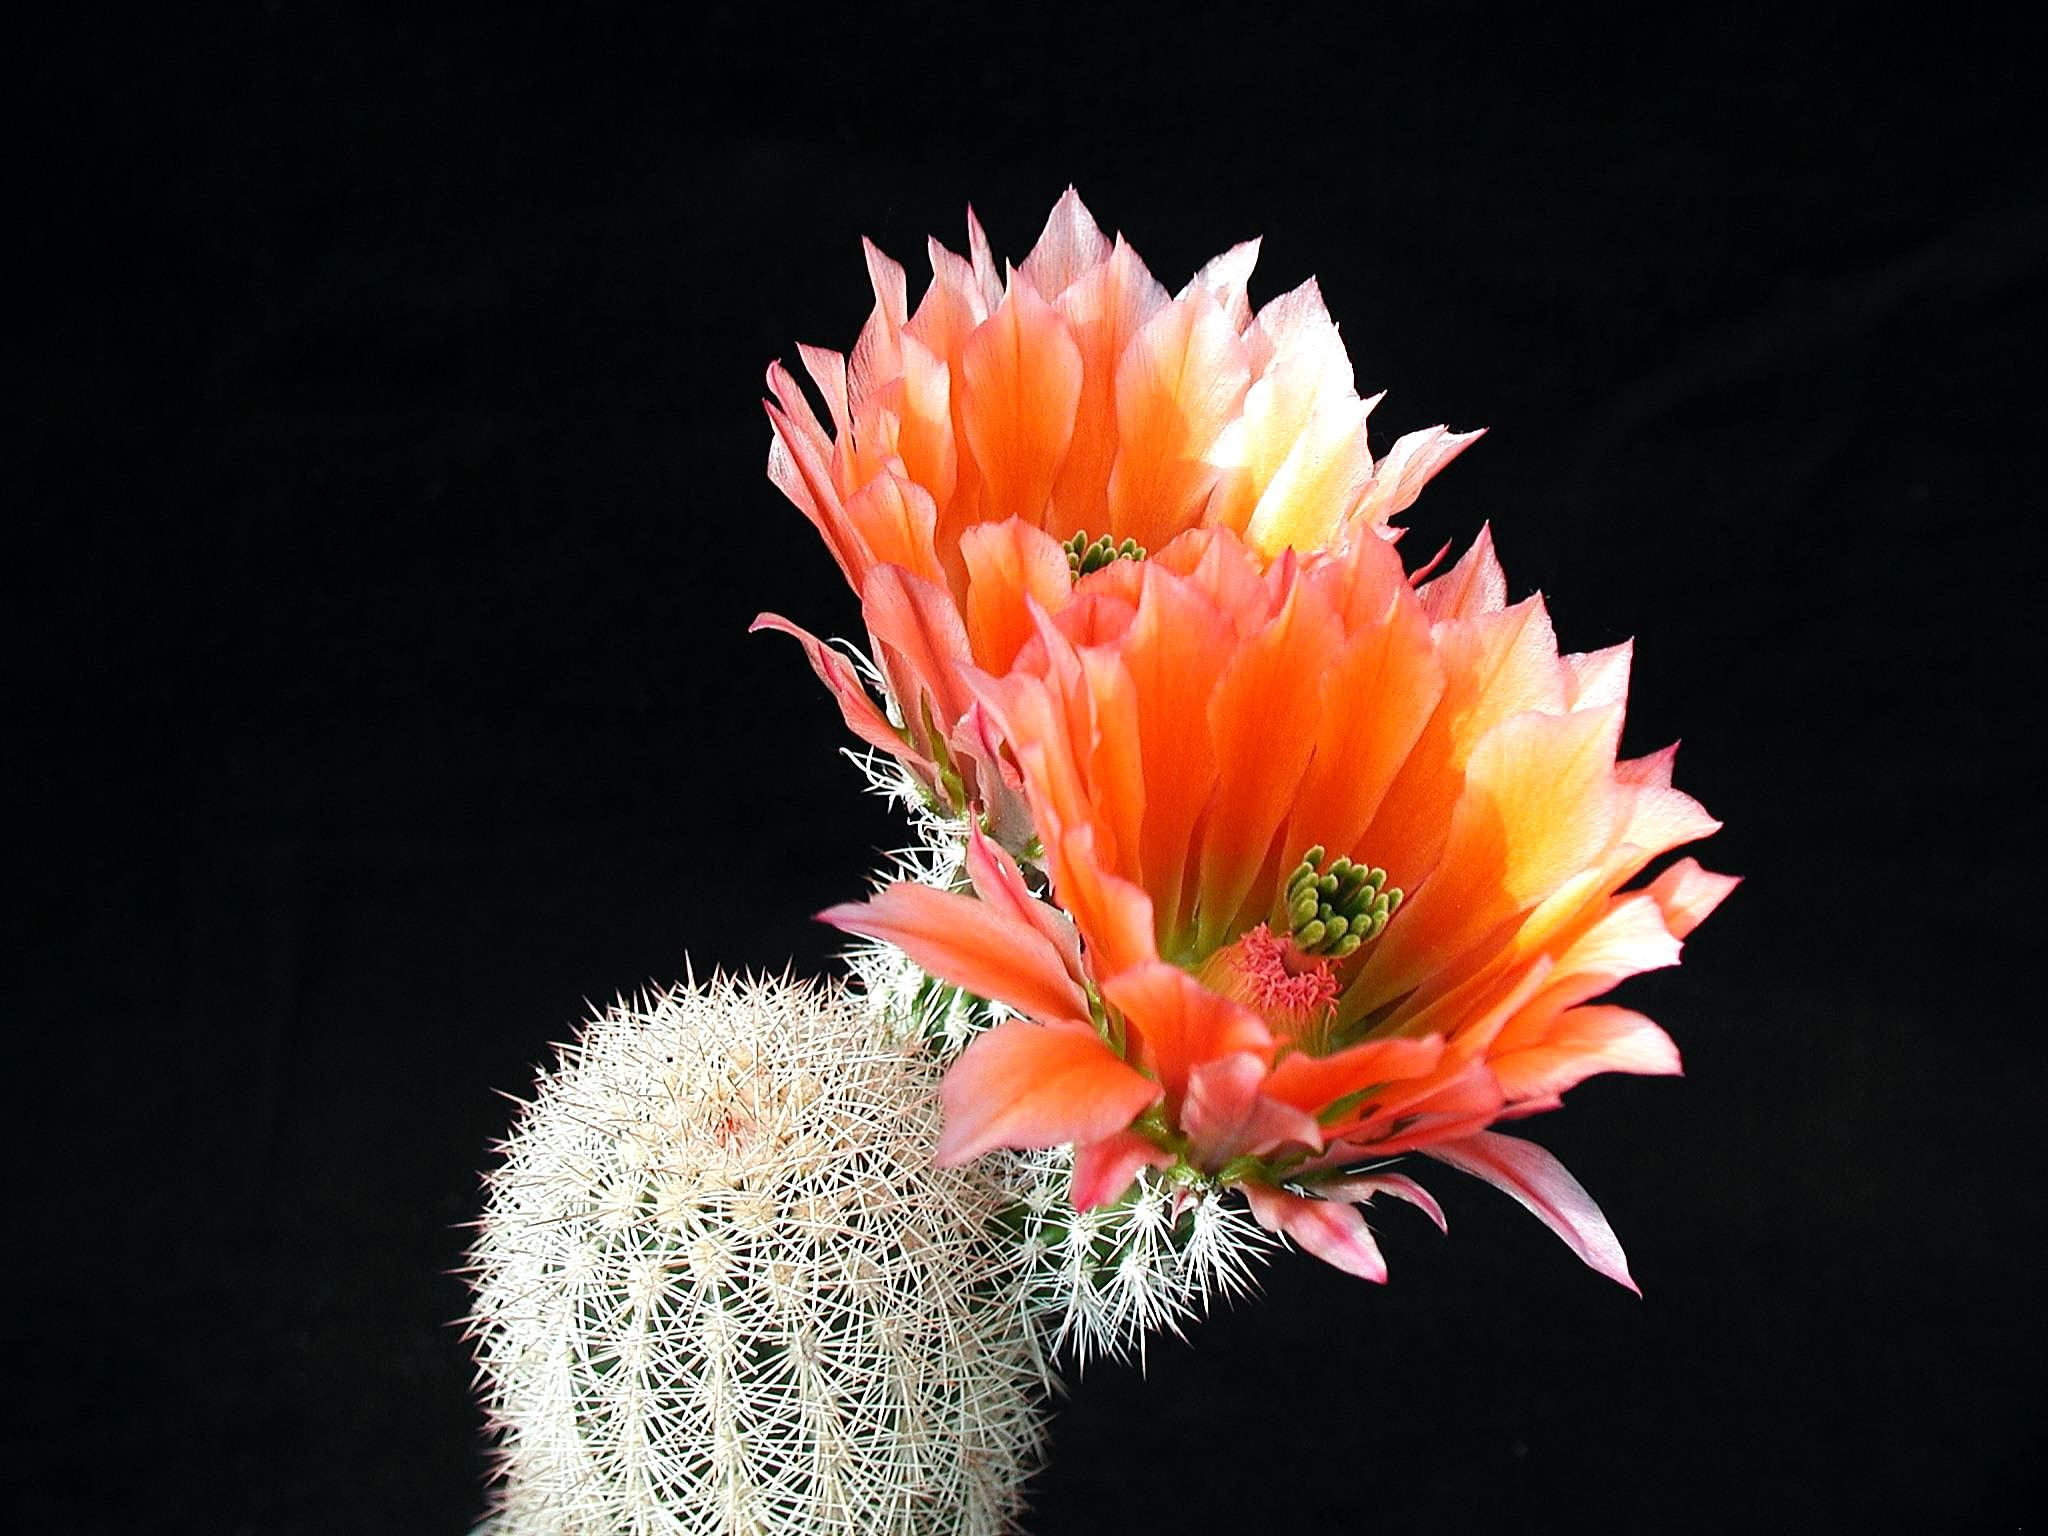 Cactus-with-Flowers-wallpaper-wp5804372